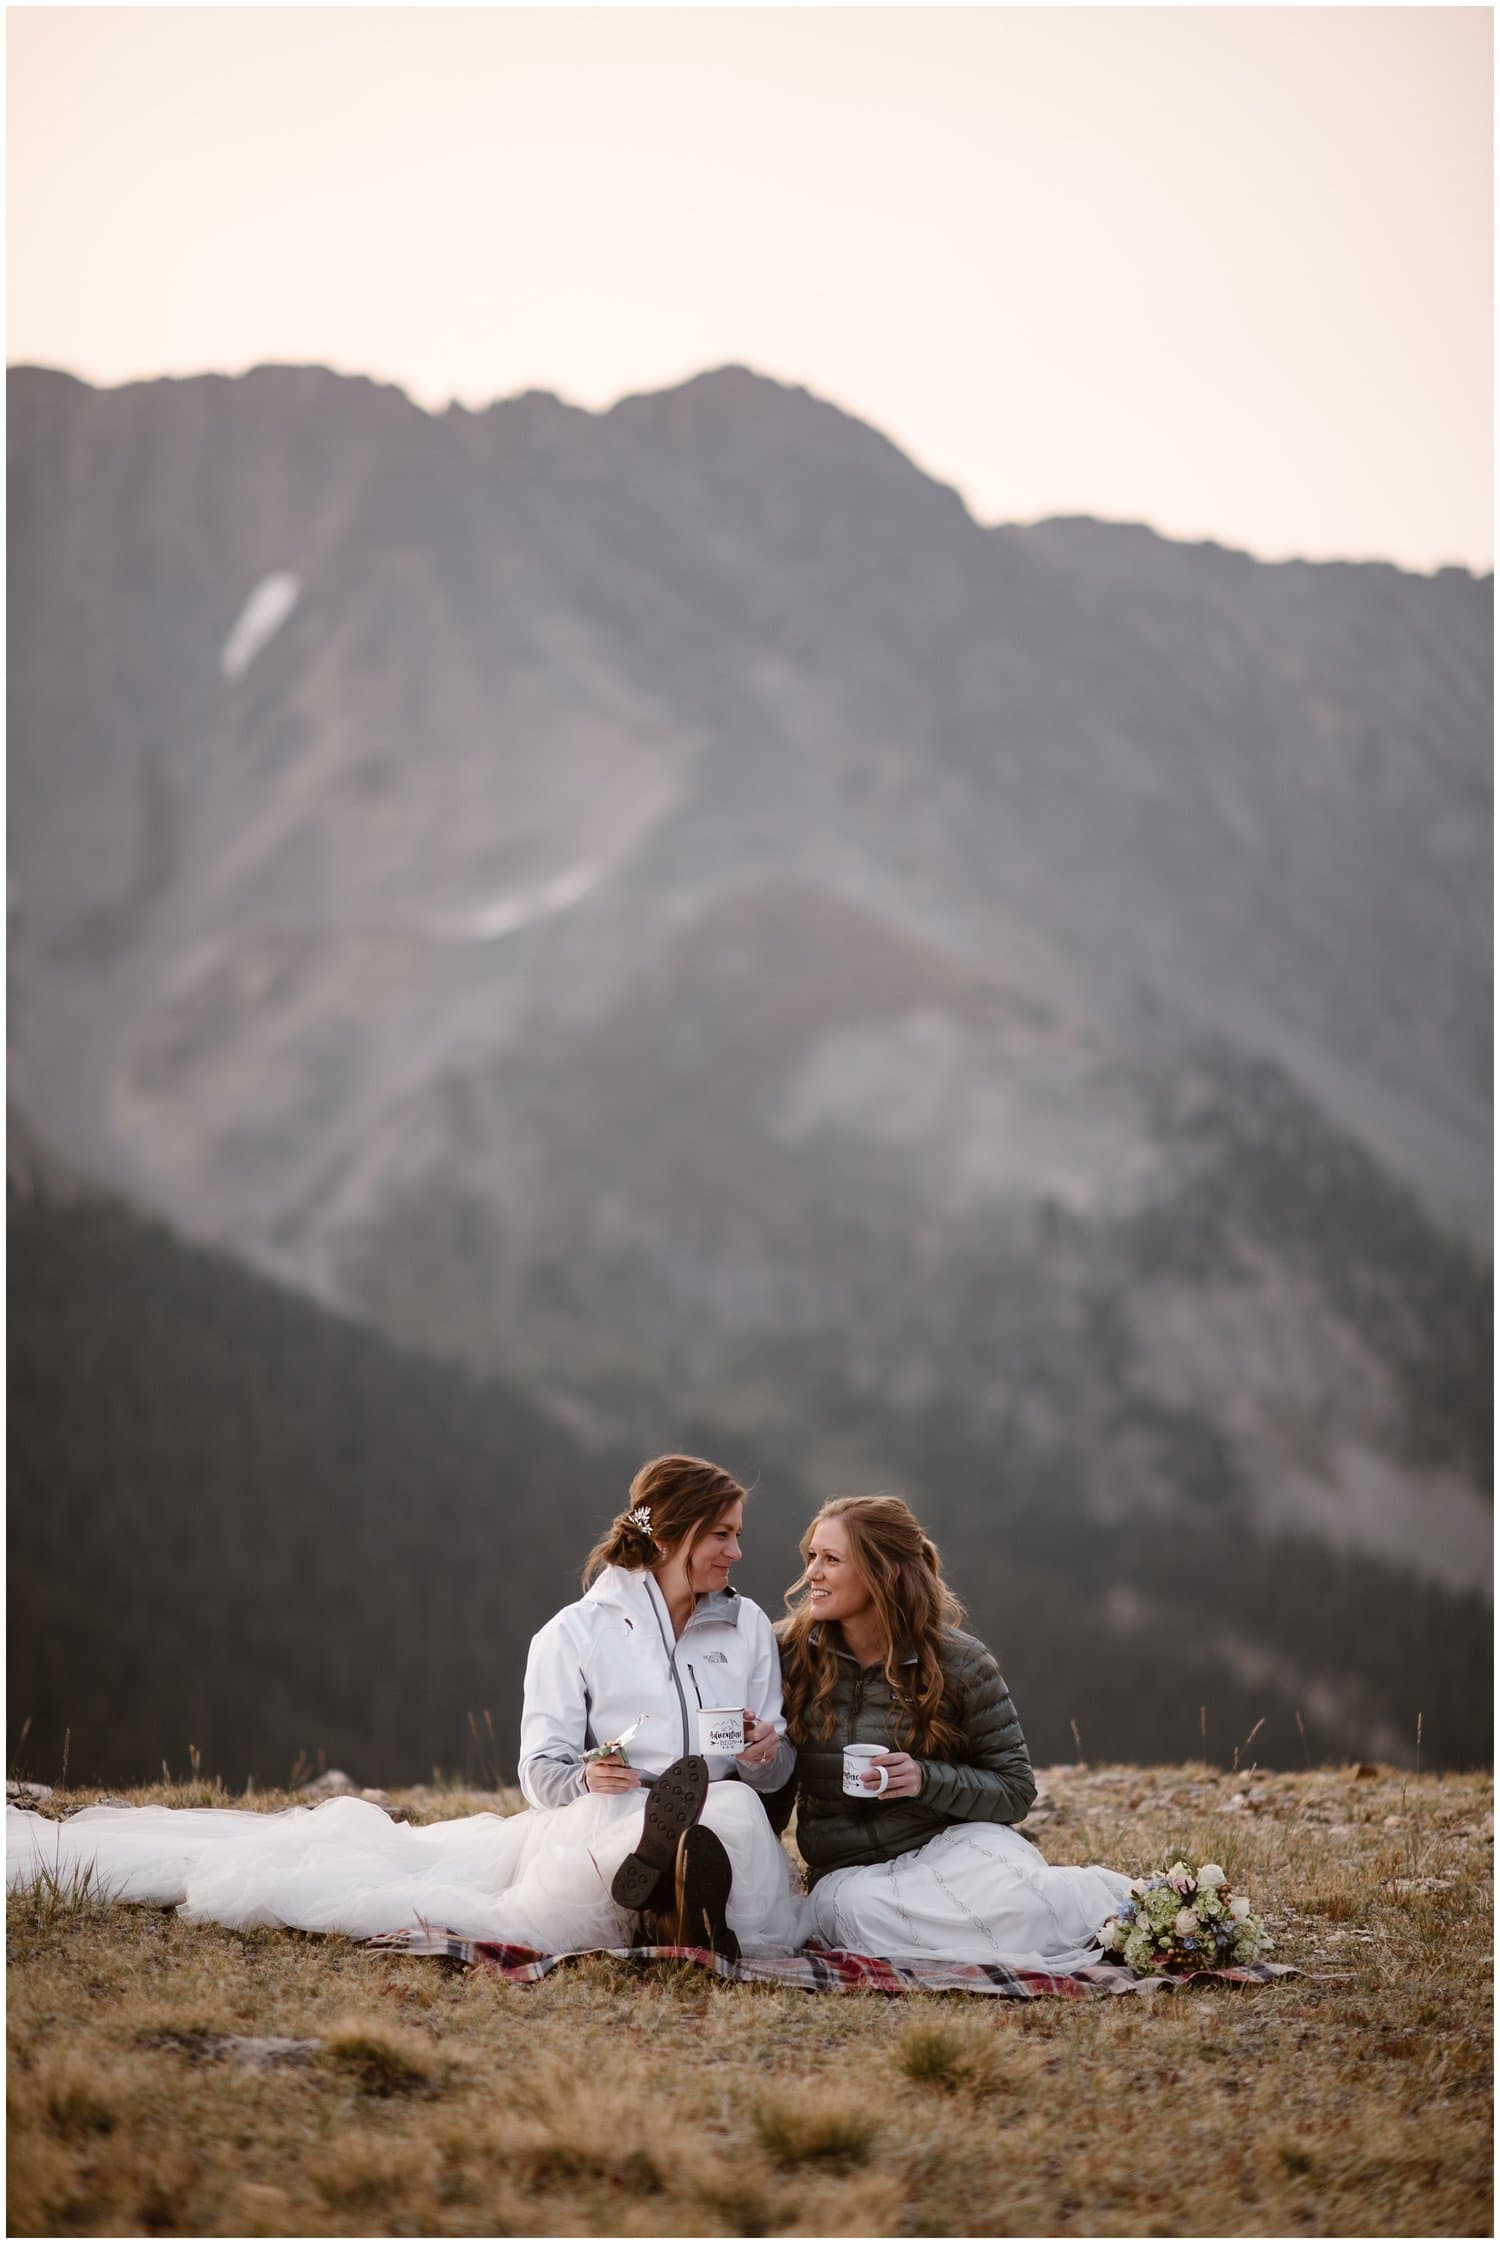 Two brides wearing winter jackets have a picnic on a mountain on their wedding day.